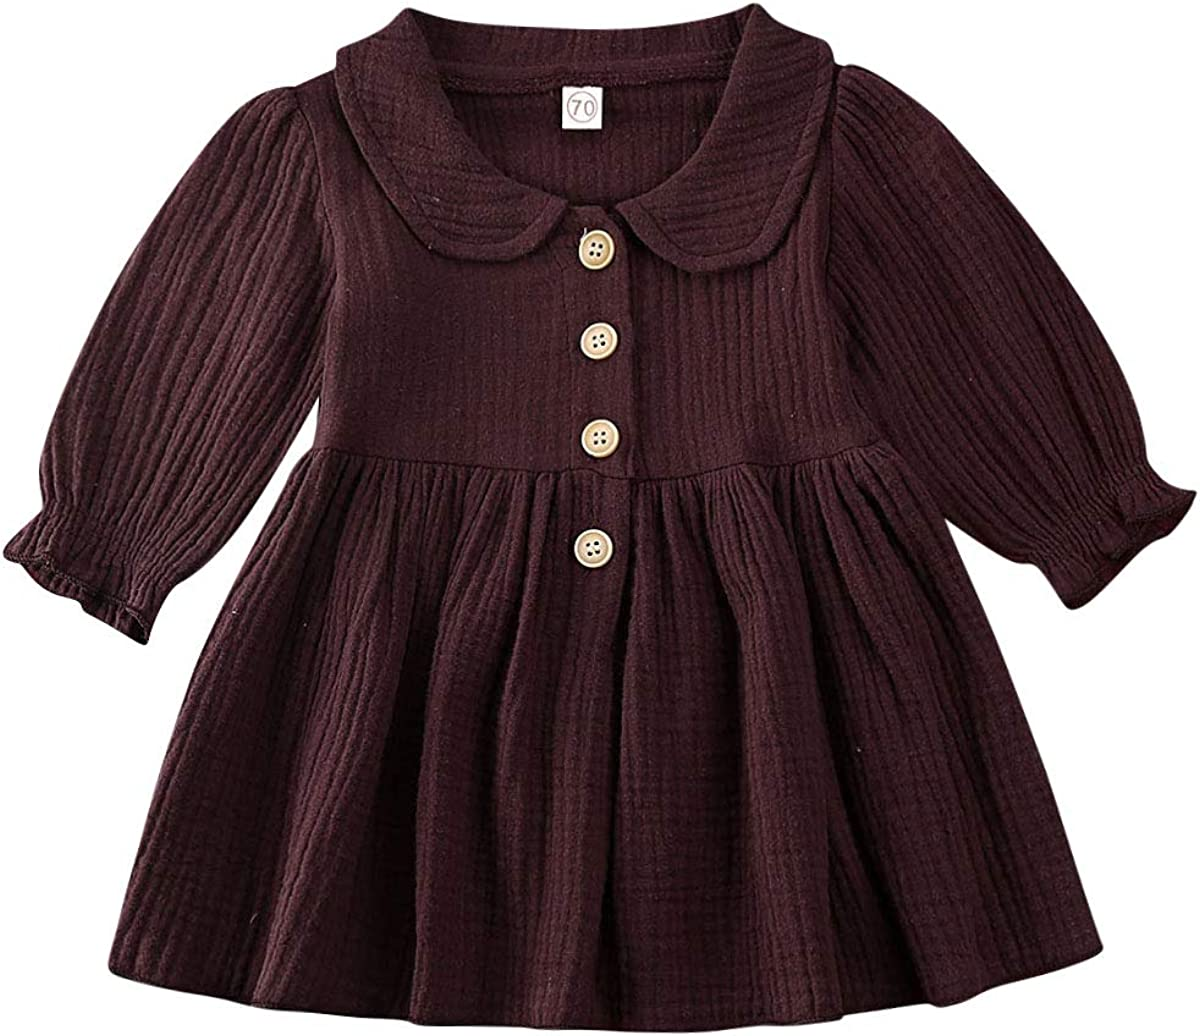 Toddler [Alternative dealer] Baby Girls Solid Dress Clothes Ruffled Excellent Long Sleeve Butto